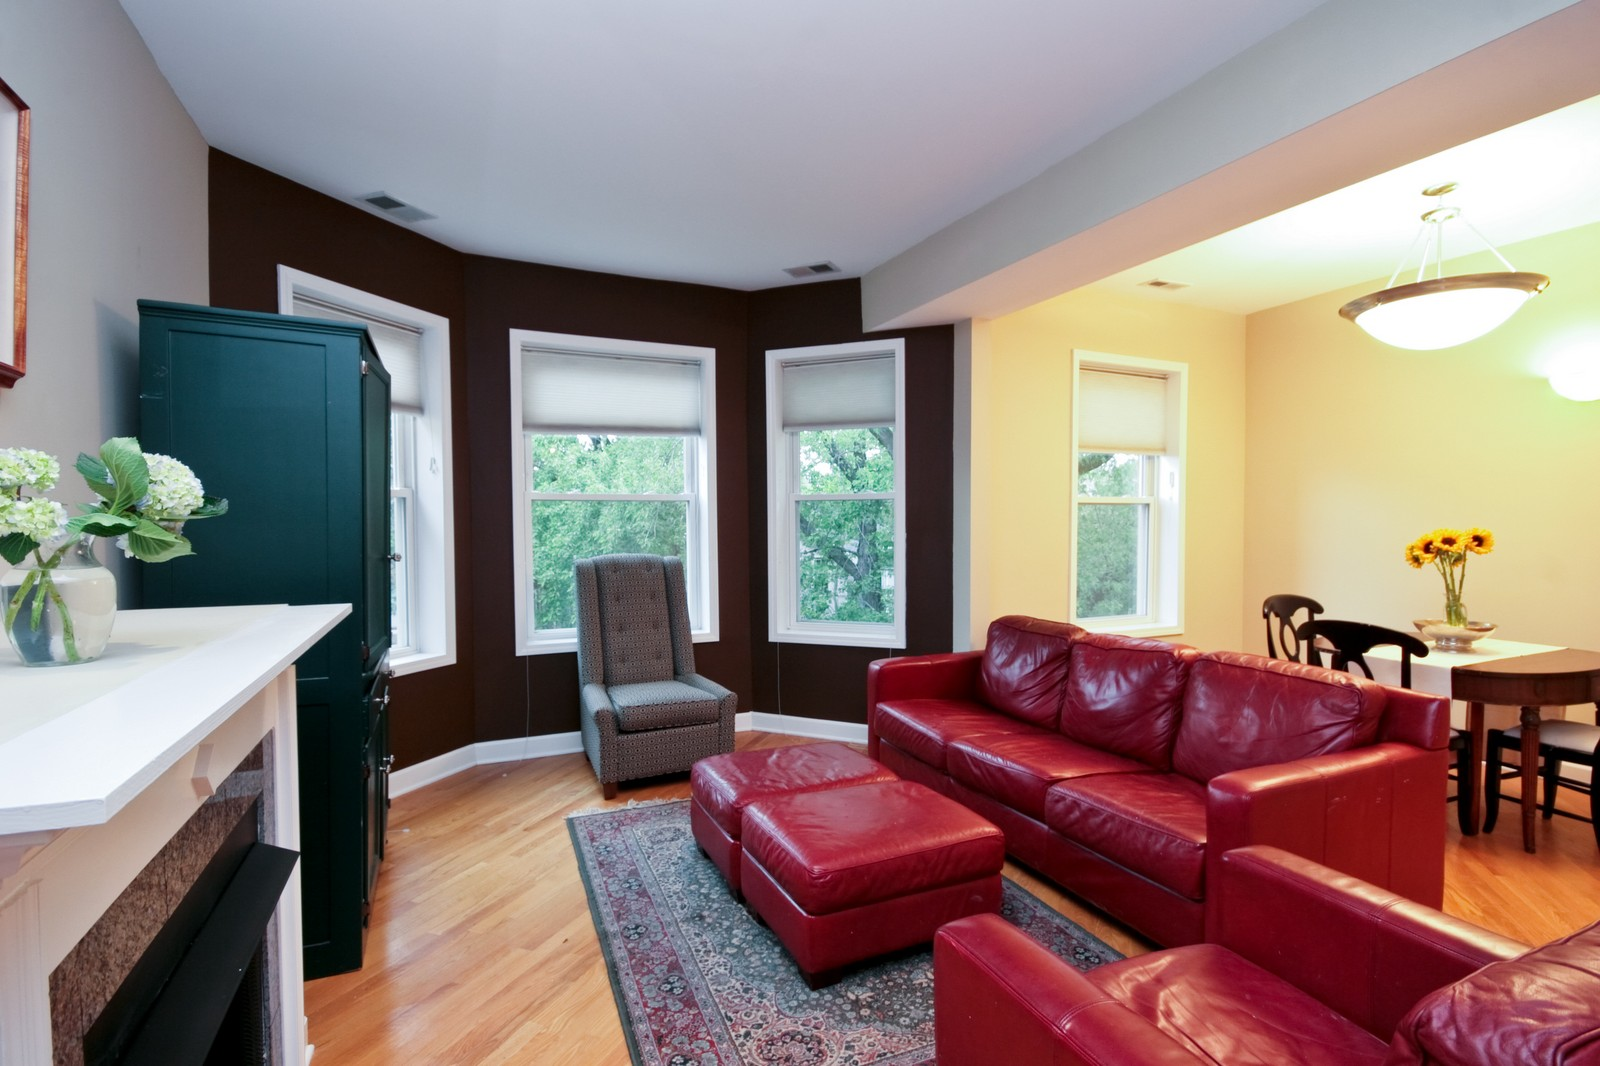 Real Estate Photography - 3705 N Paulina, Unit 3, Chicago, IL, 60613 - Living Room - Gas fireplace with granite surround